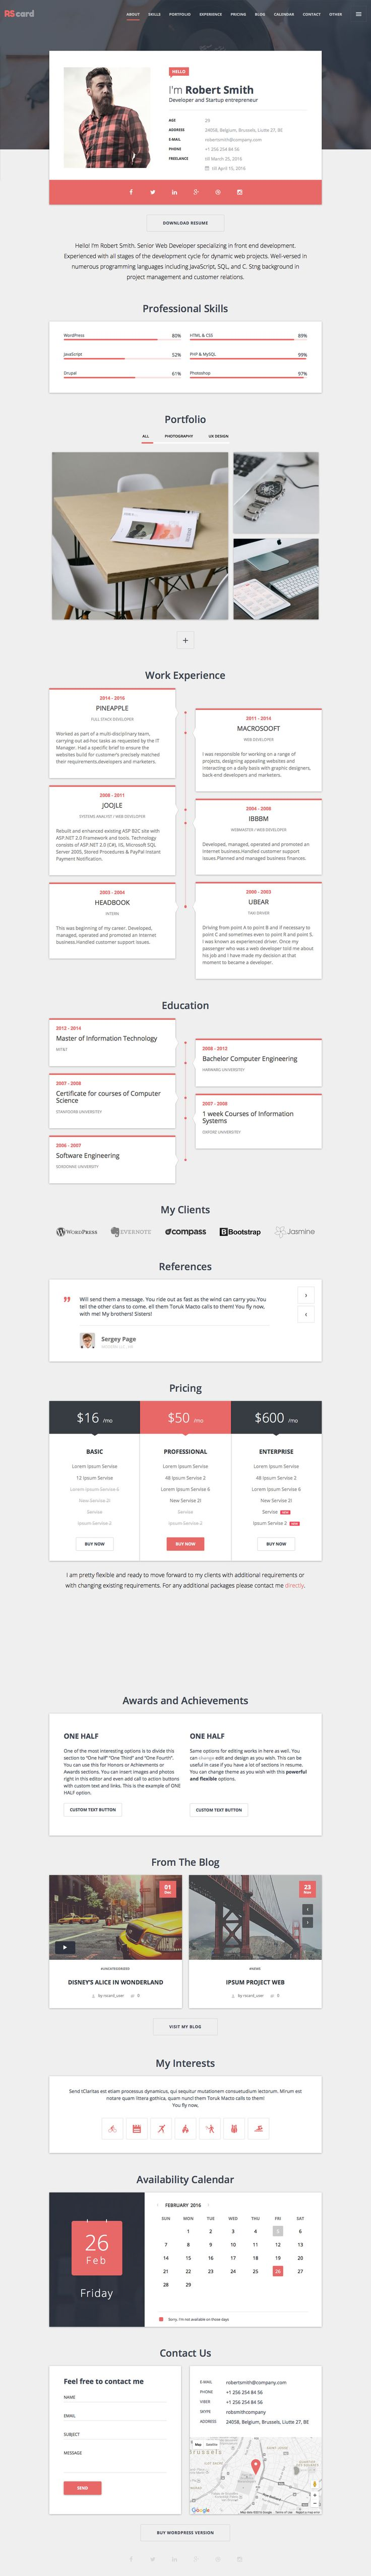 'RS Card' is a One Page WordPress theme suited for anyone after a long scrolling resume, CV or portfolio. The theme features a clean card-style layout and adheres to Google's Material Design standard. The demo showcases a portfolio example but there are also demos for musicians and doctors. Features include intro portfolio card, timeline, skill graph, portfolio gallery with filter, pricing table and a neat availability calendar. Good work this by Px-lab.